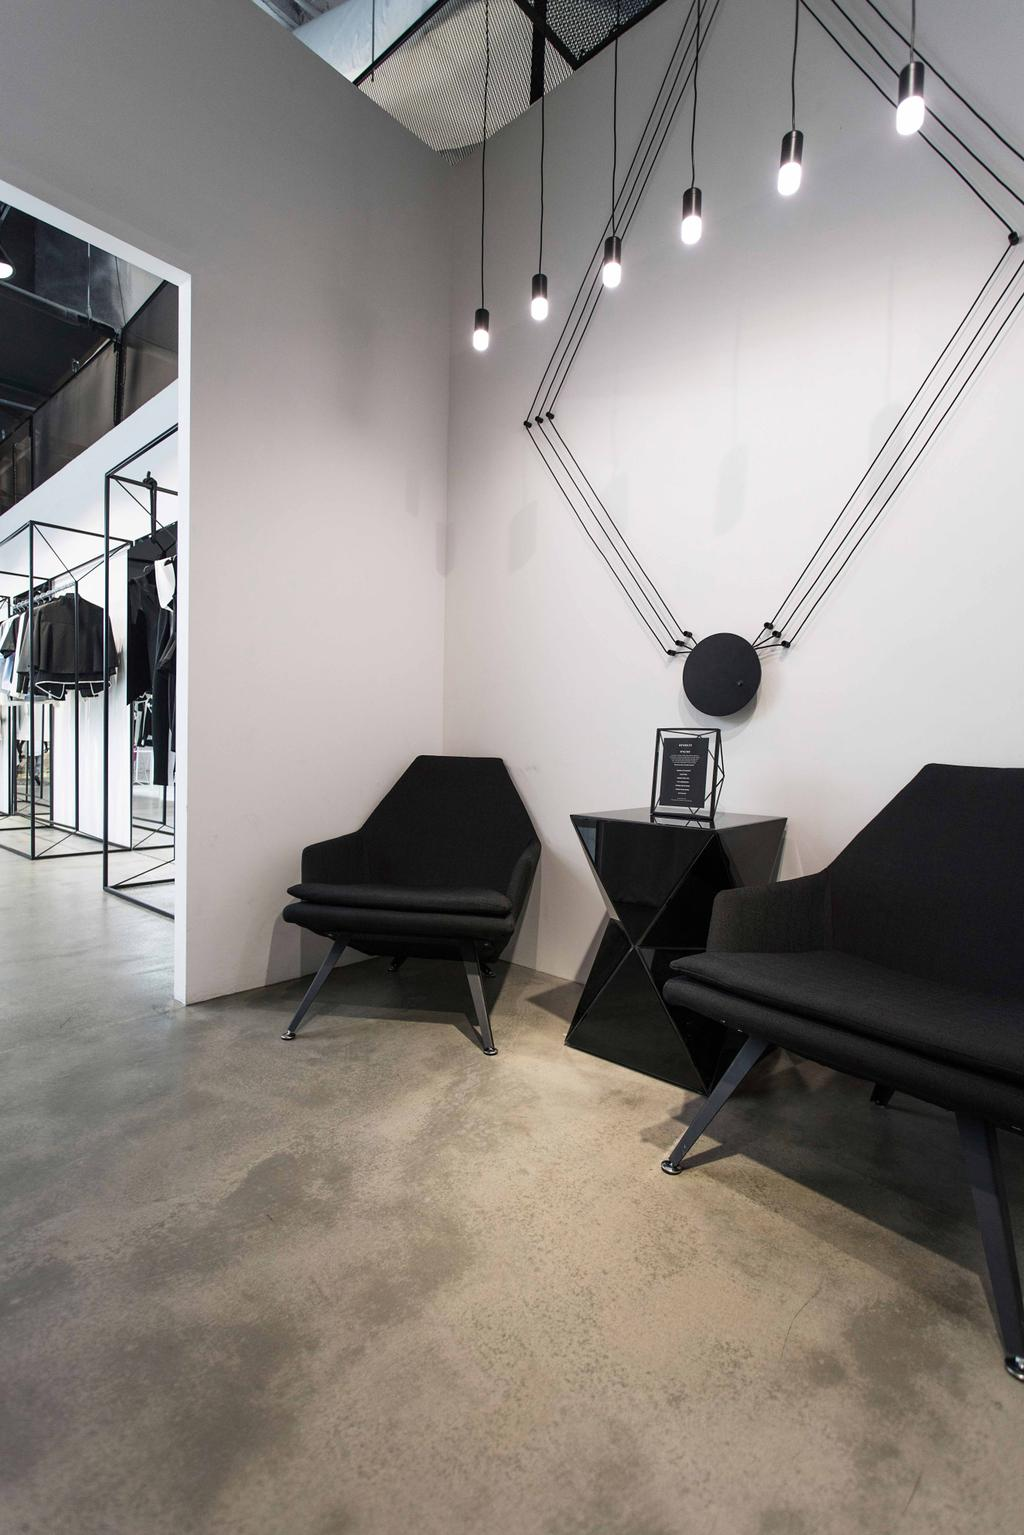 Revolte Flagship Store, Commercial, Architect, asolidplan, Minimalistic, Waiting Area, Shop Waiting Area, Downlights, Cement Screeding Wall, Cement Screeding Floor, Black Downlights, Wall Art, Black Chairs, Door, Revolving Door, Chair, Furniture, Couch